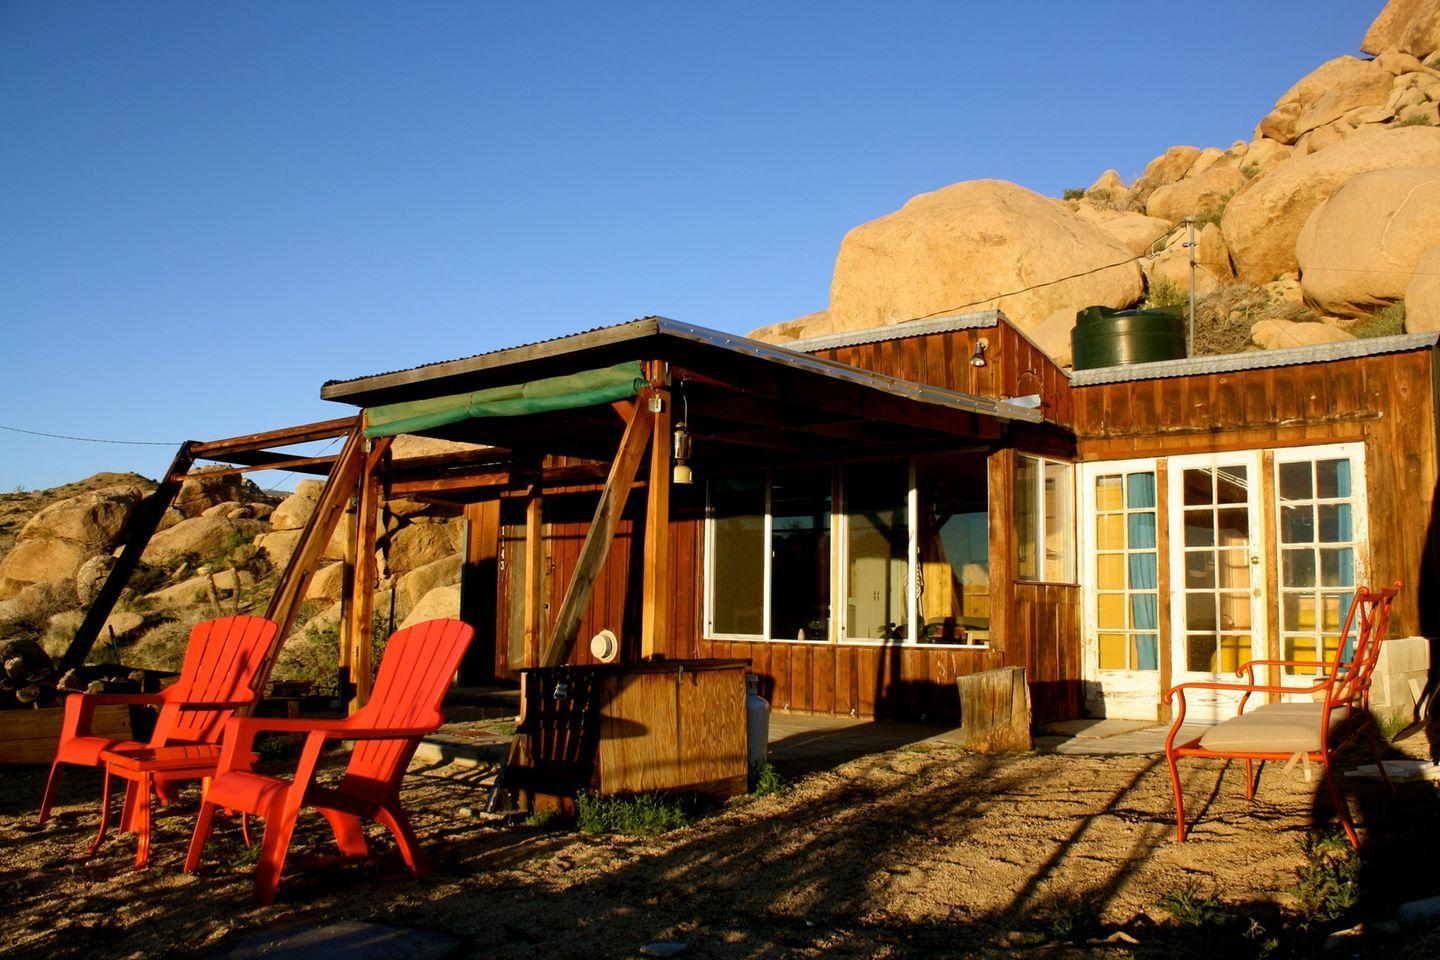 pioneertown chat sites Joshua tree sits roughly two and a half hours east of los angeles by car, a majestic desert paradise of 792,510 acres of national park lands squished between the palm-tree lined boulevards.